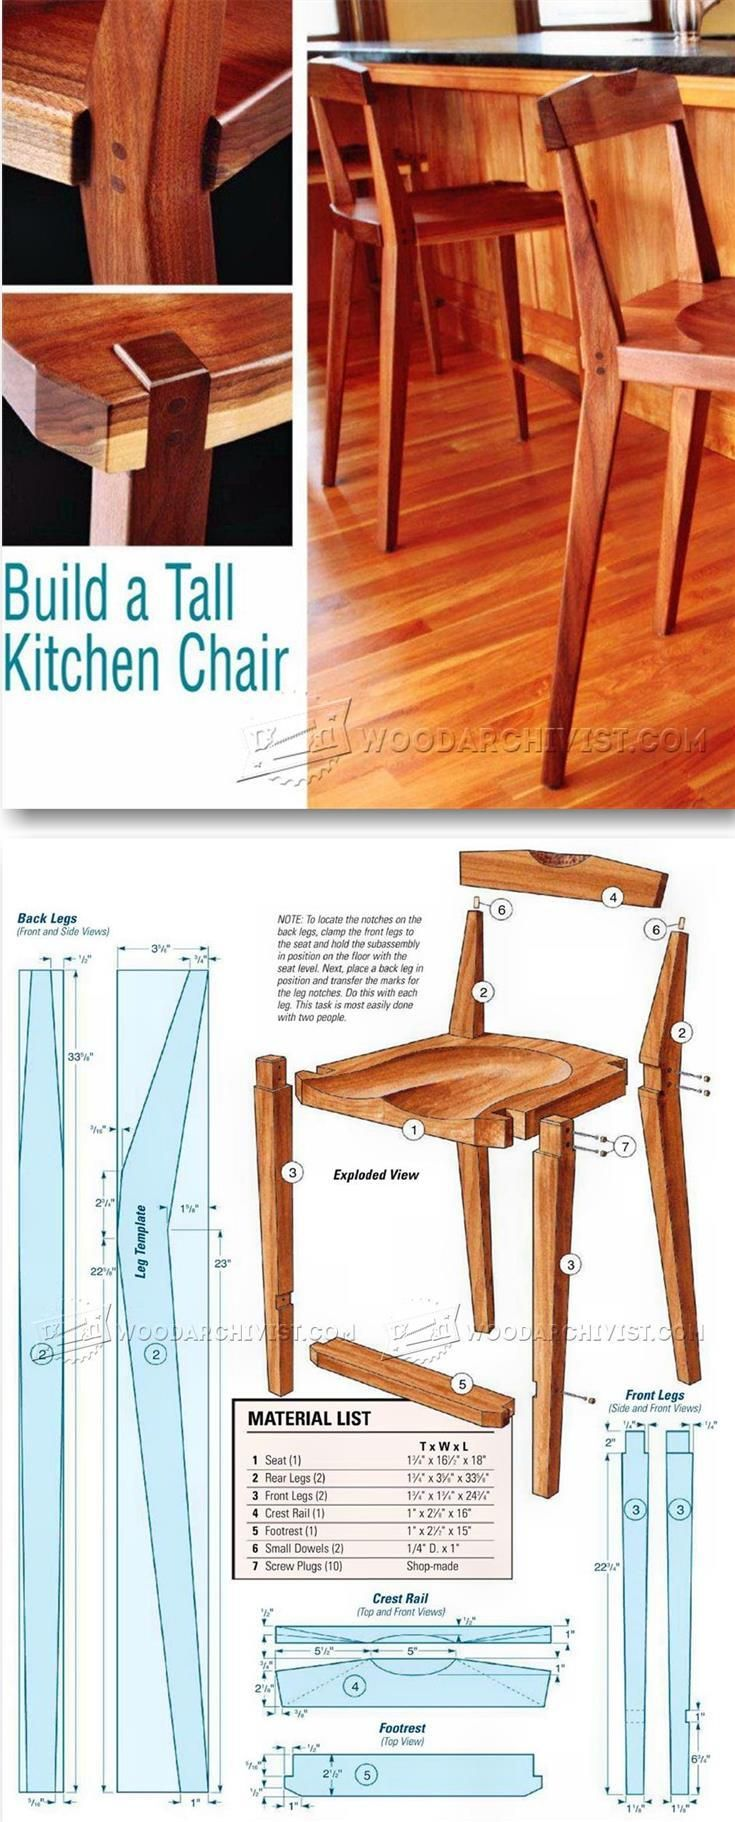 kitchen chairs kitchen wooden chairs Kitchen Chair Plans Furniture Plans and Projects WoodArchivist com